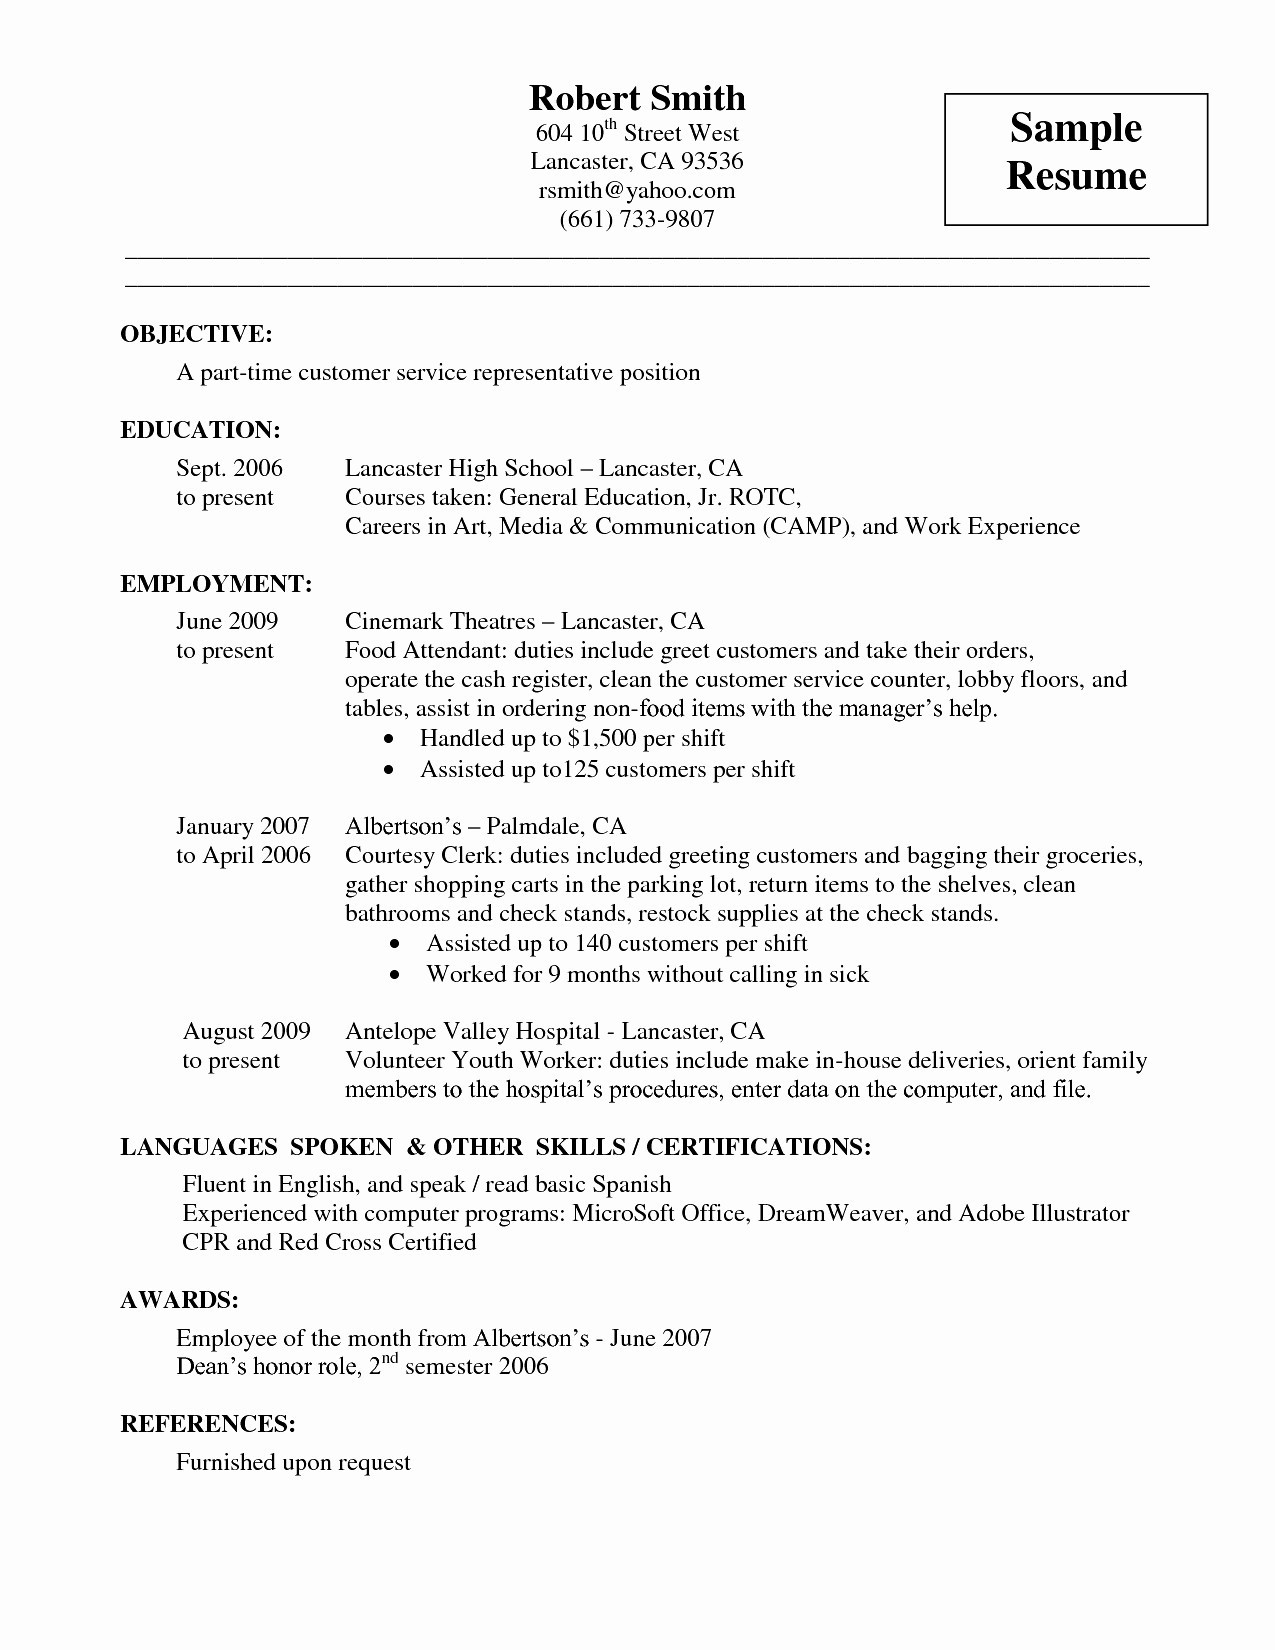 Indeed Cover Letter Template - Indeed Search Resumes Awesome Examples Resumes for Jobs